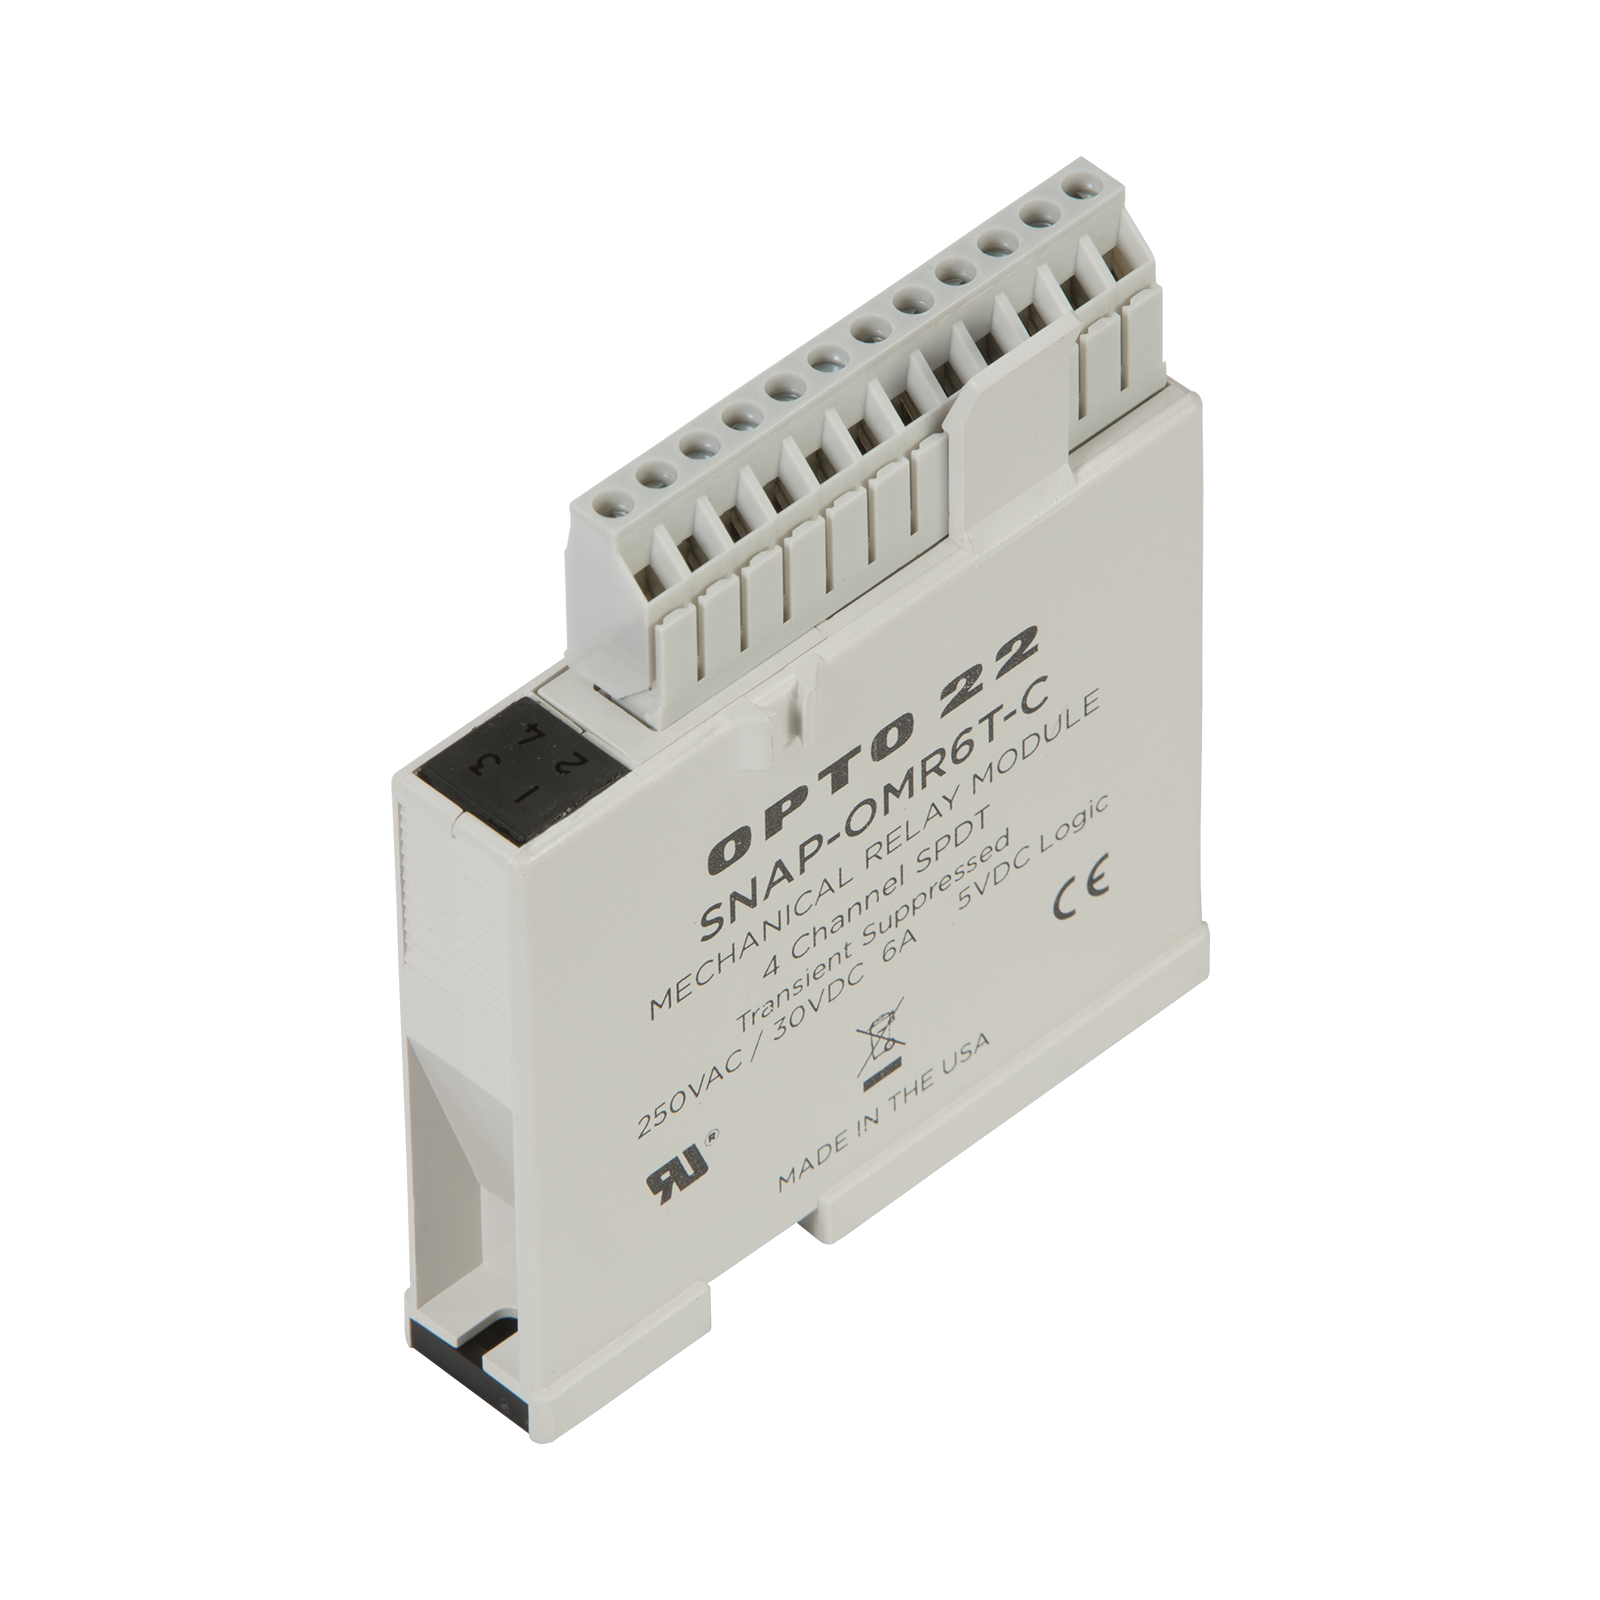 Opto22 Snap Omr6t C Isolated 4 Channel Mechanical Power Relay In Circuit Breaker Previous